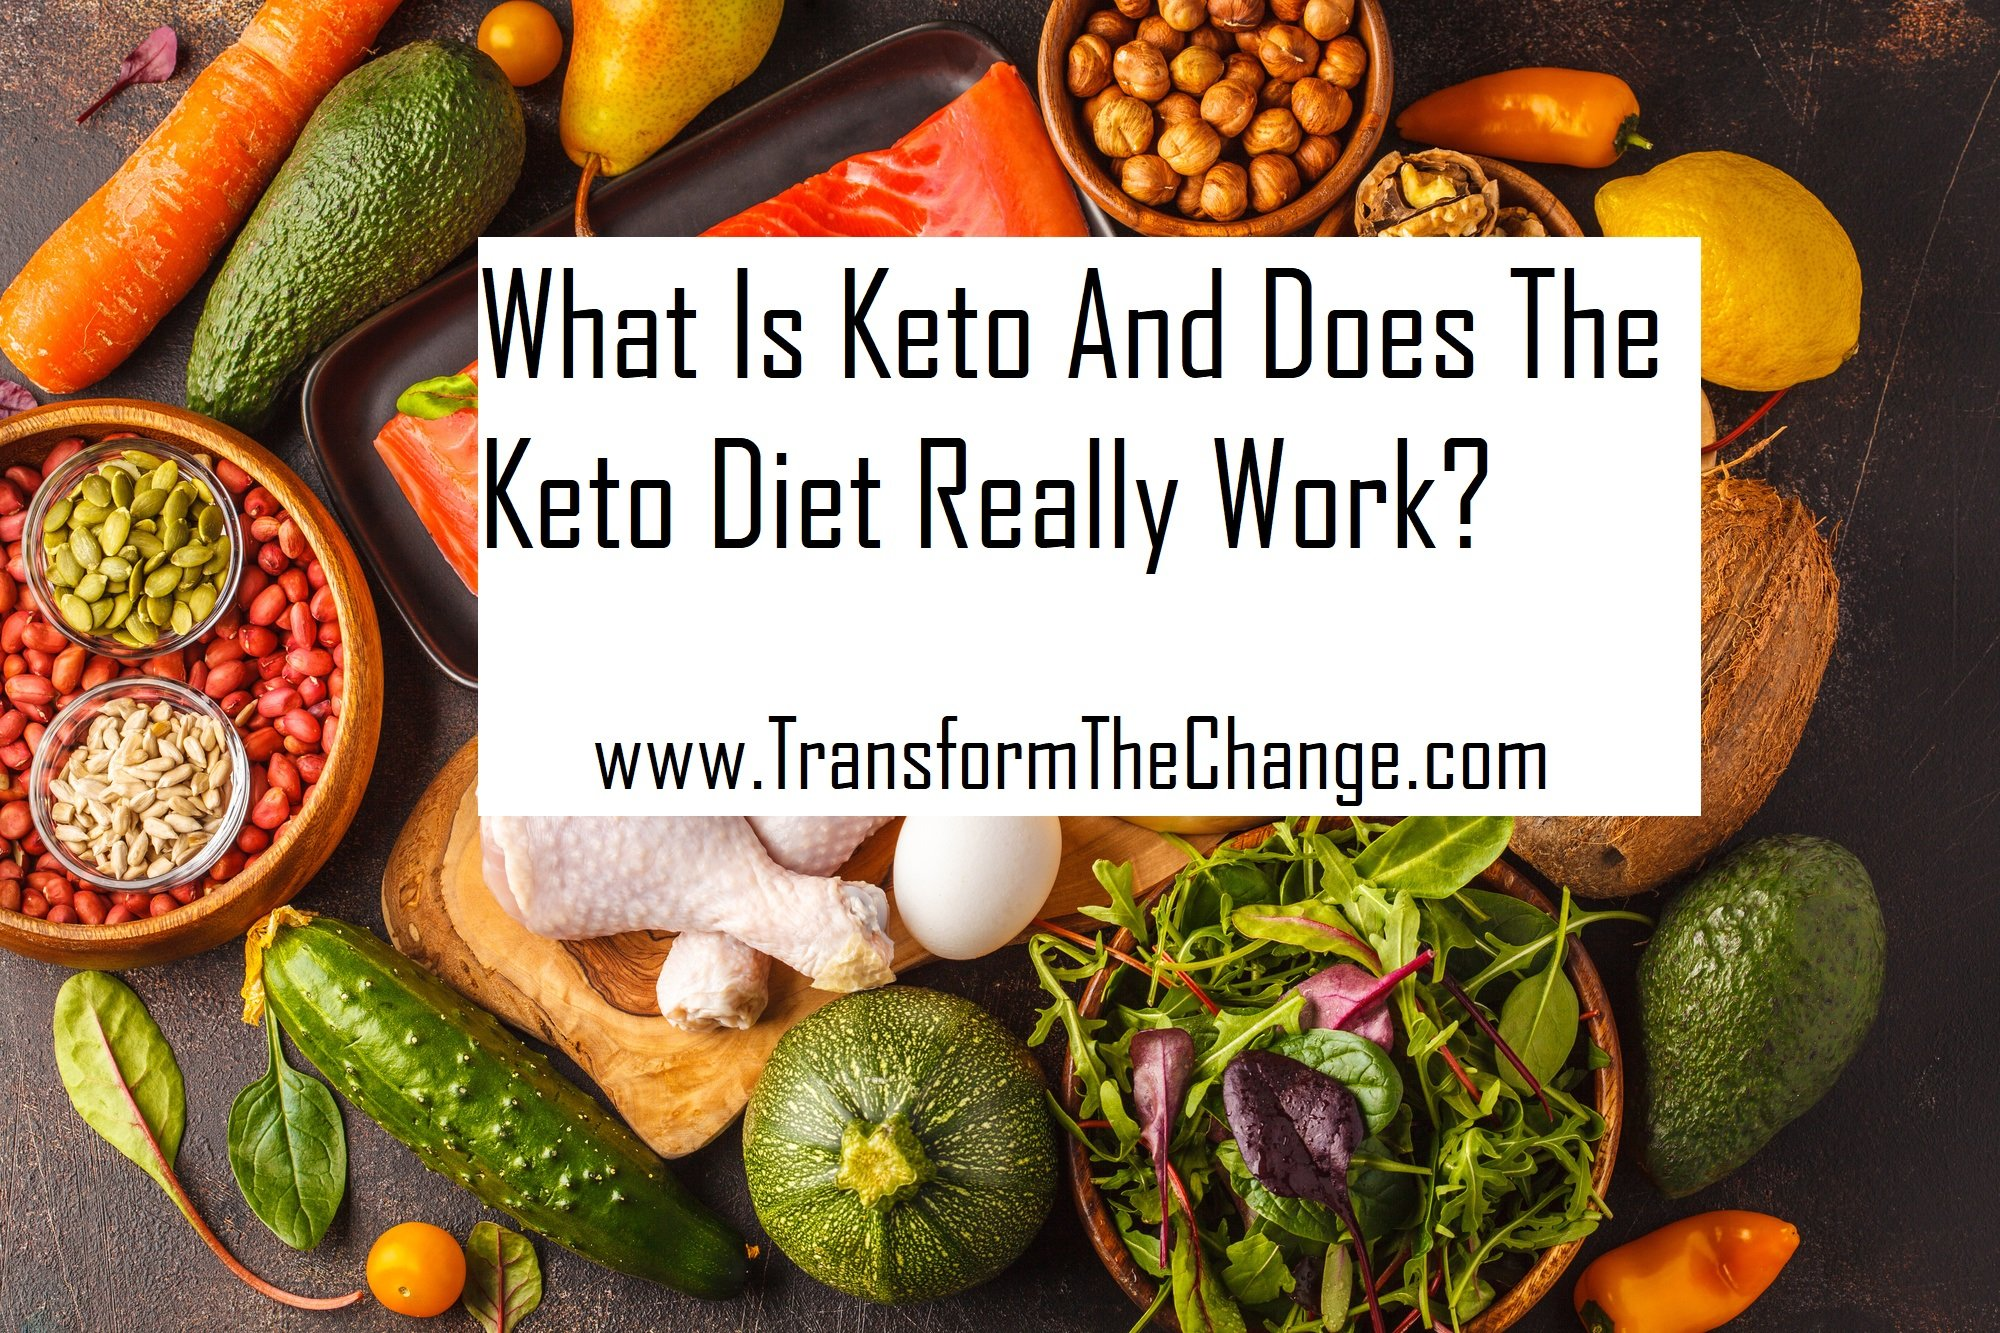 What Is Keto And Does The Keto Diet Really Work?